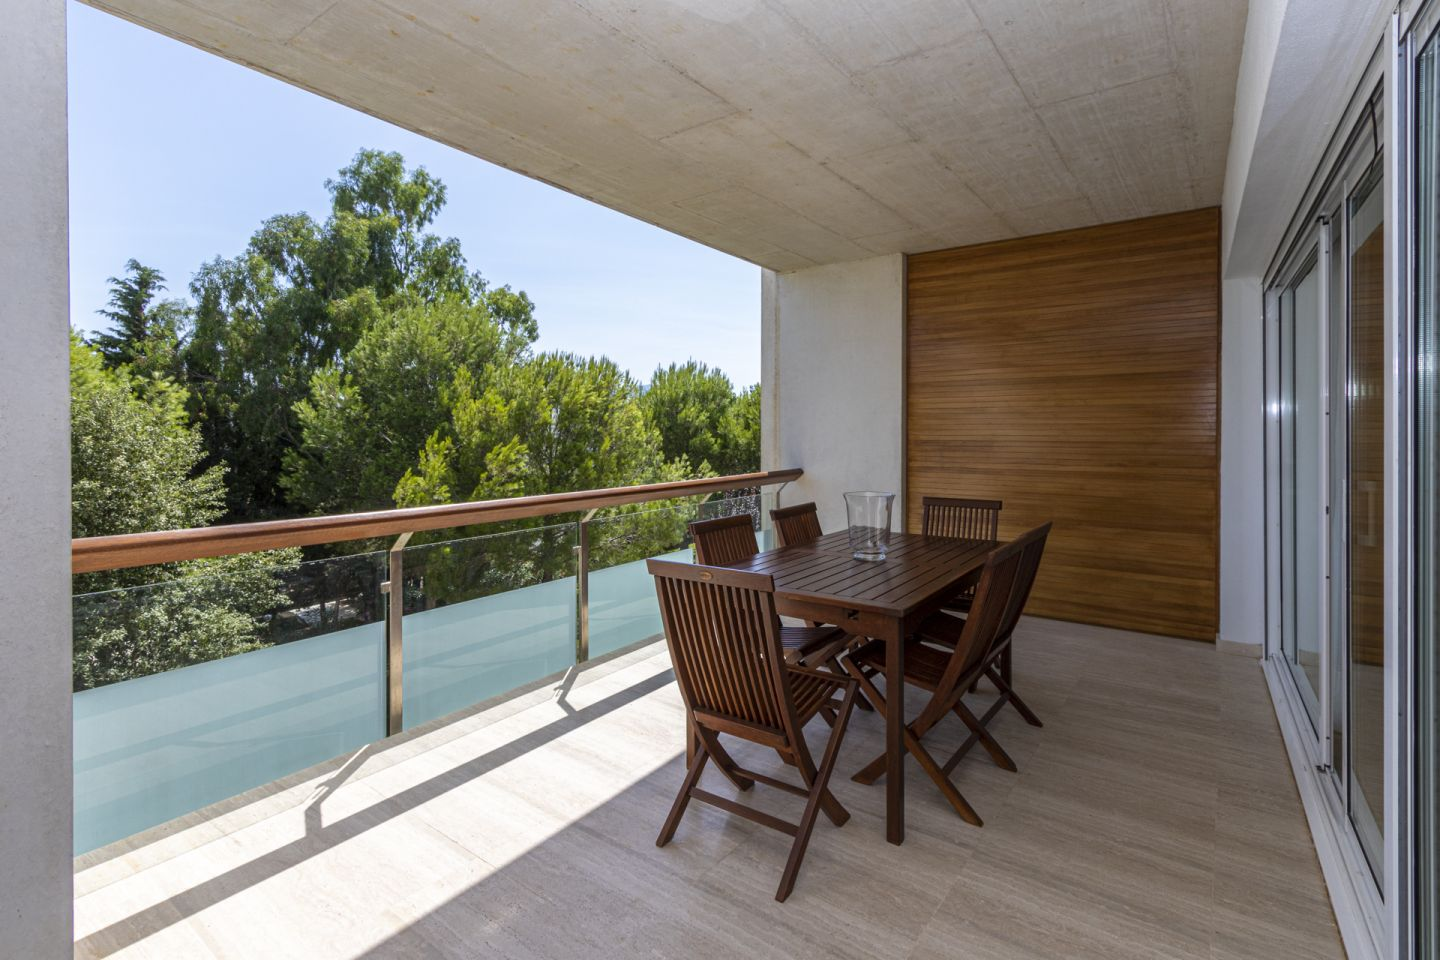 3 Bed Penthouse for sale in PUERTO POLLENSA 15